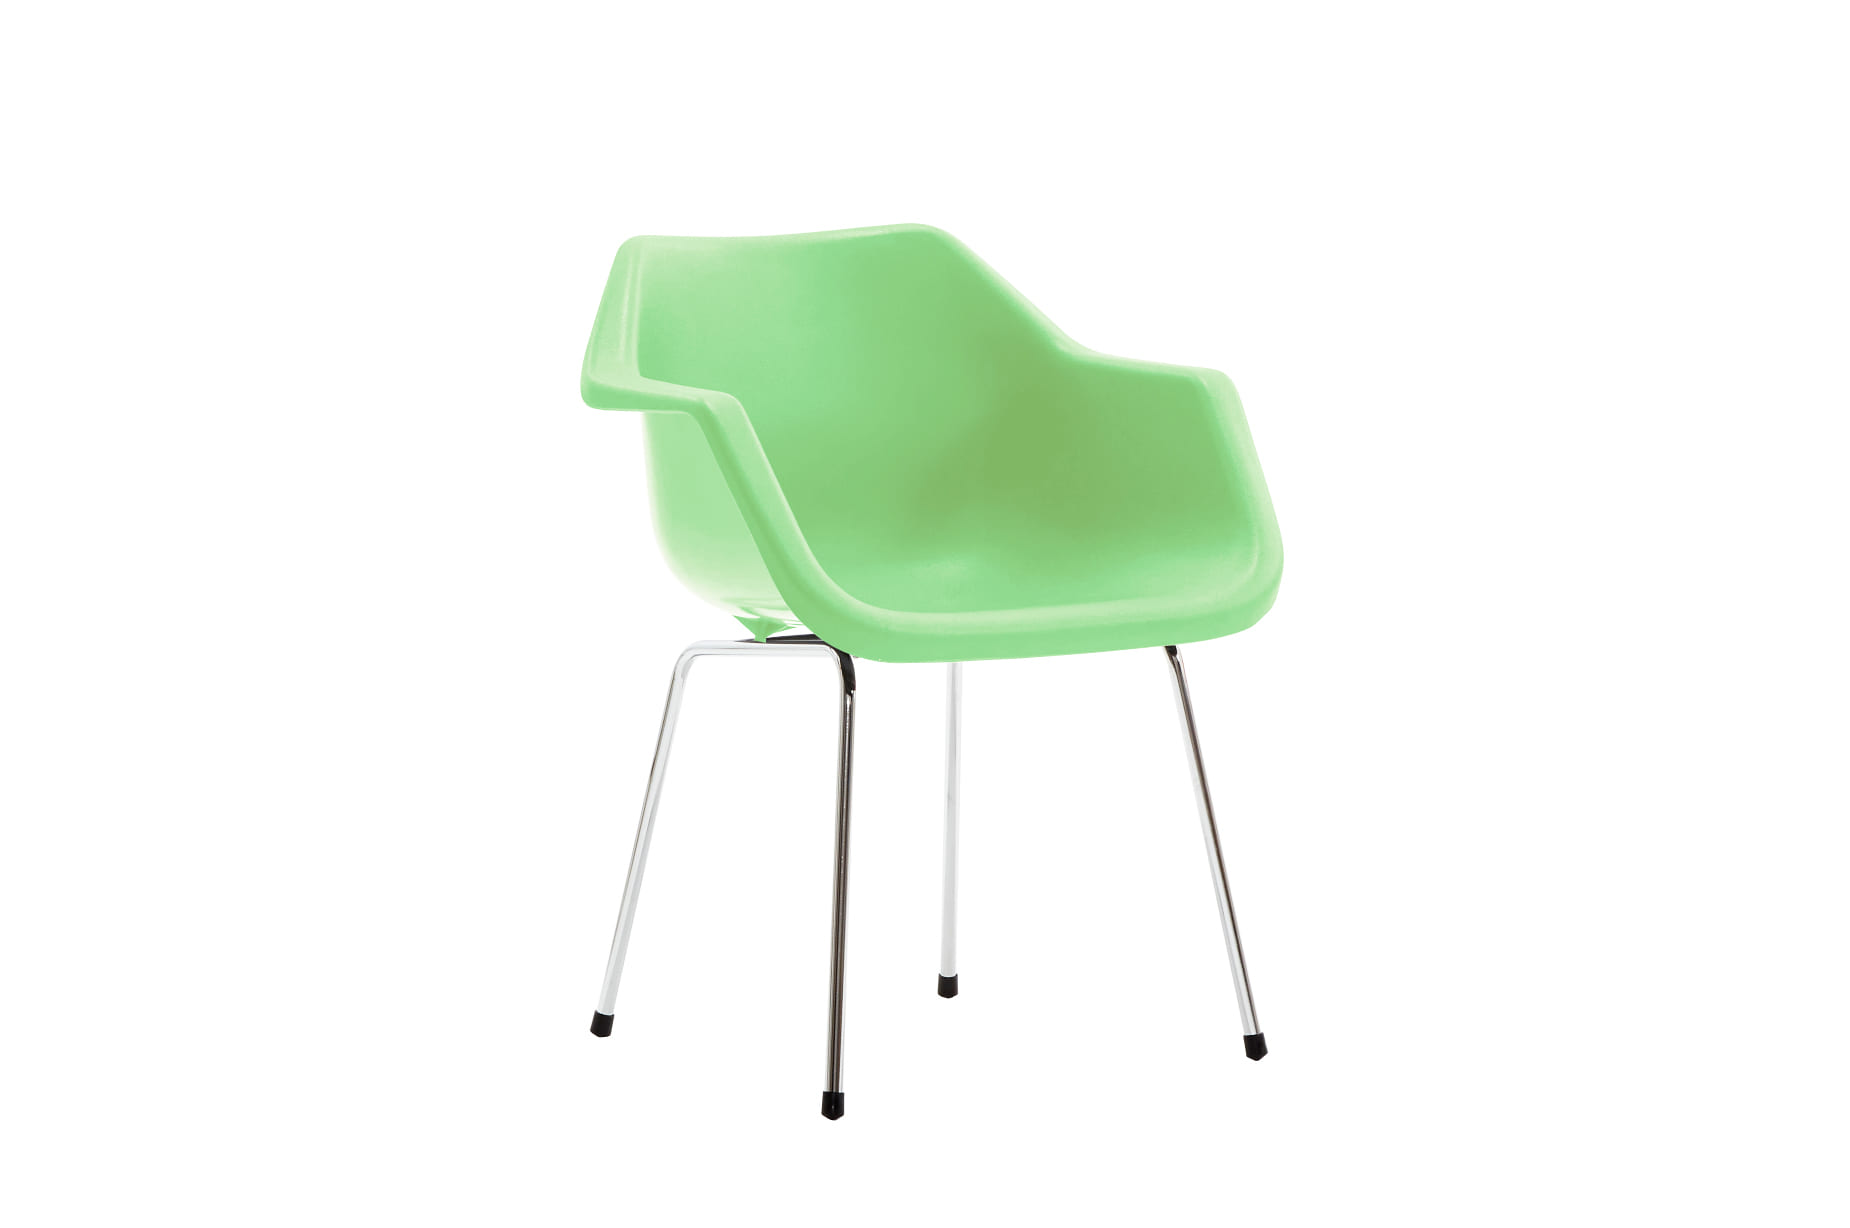 (주)도이치[BRITISHER] POLYPROP armchair by Robinday 1967, chromed leg  / Special Edition _English green for BRITISHER